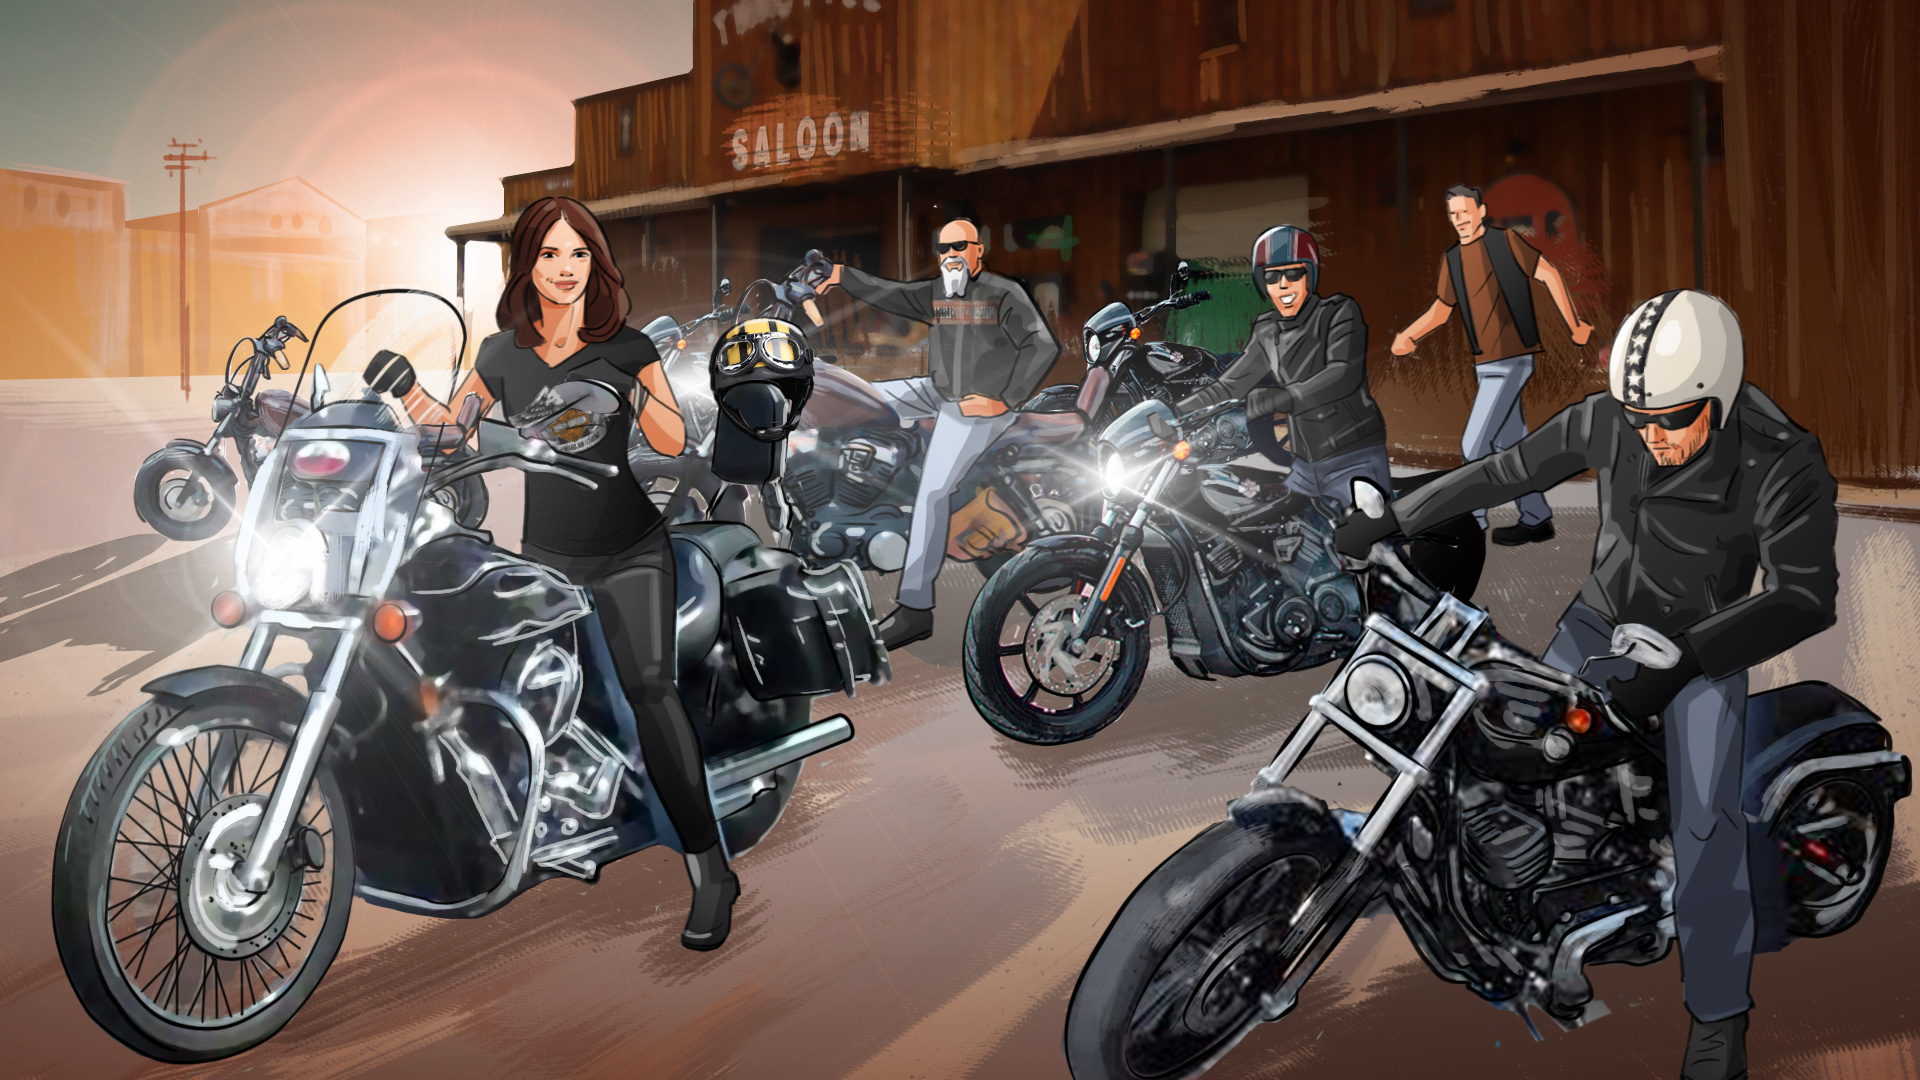 harley motocicles penelope cruise illustration advertising